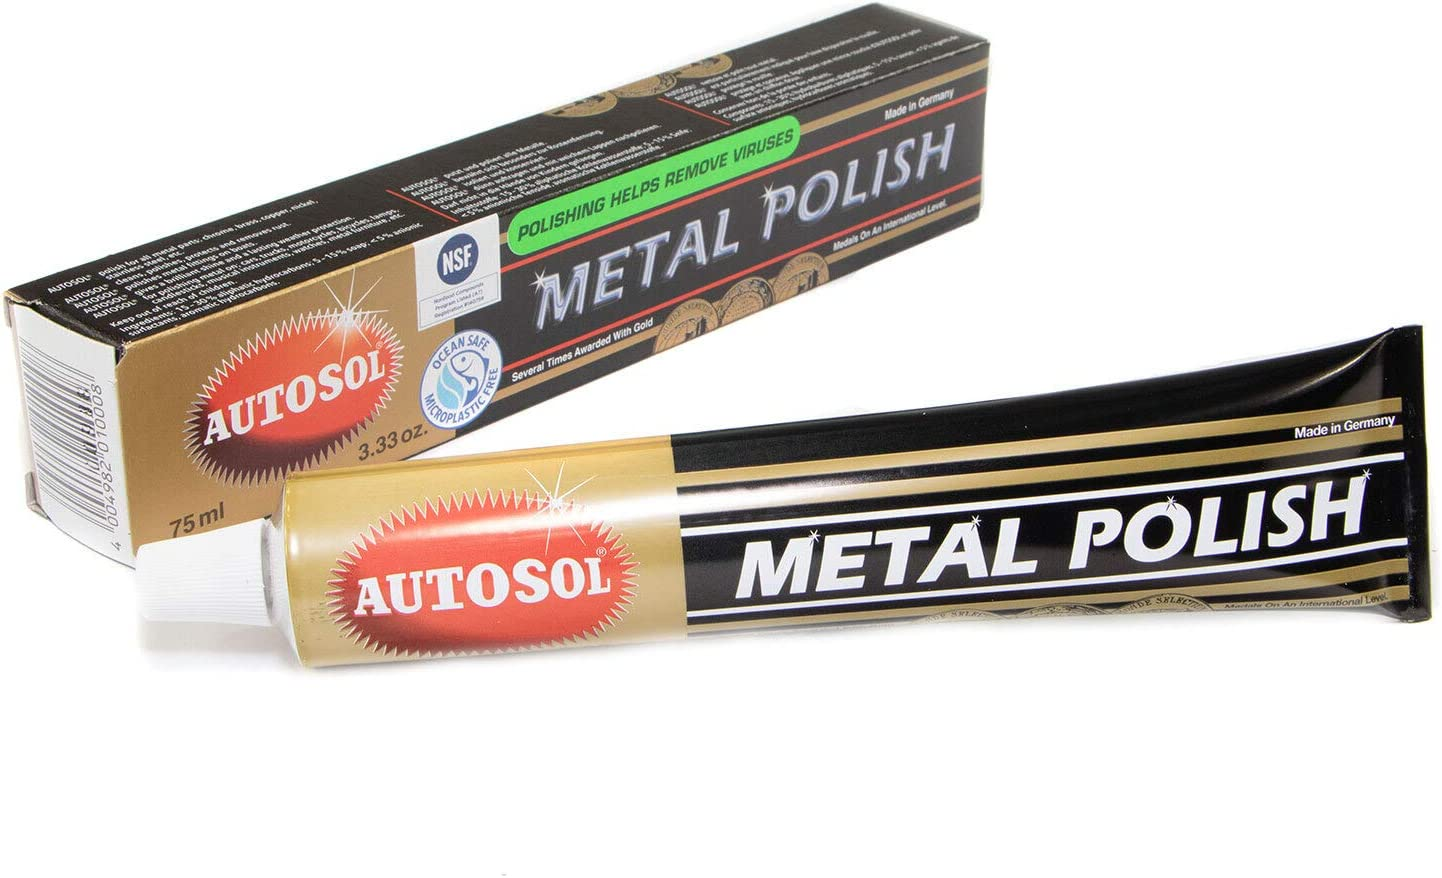 Complete Free Shipping 75 mL Autosol Raleigh Mall Metal Polish for Copper Chrome and more Brass